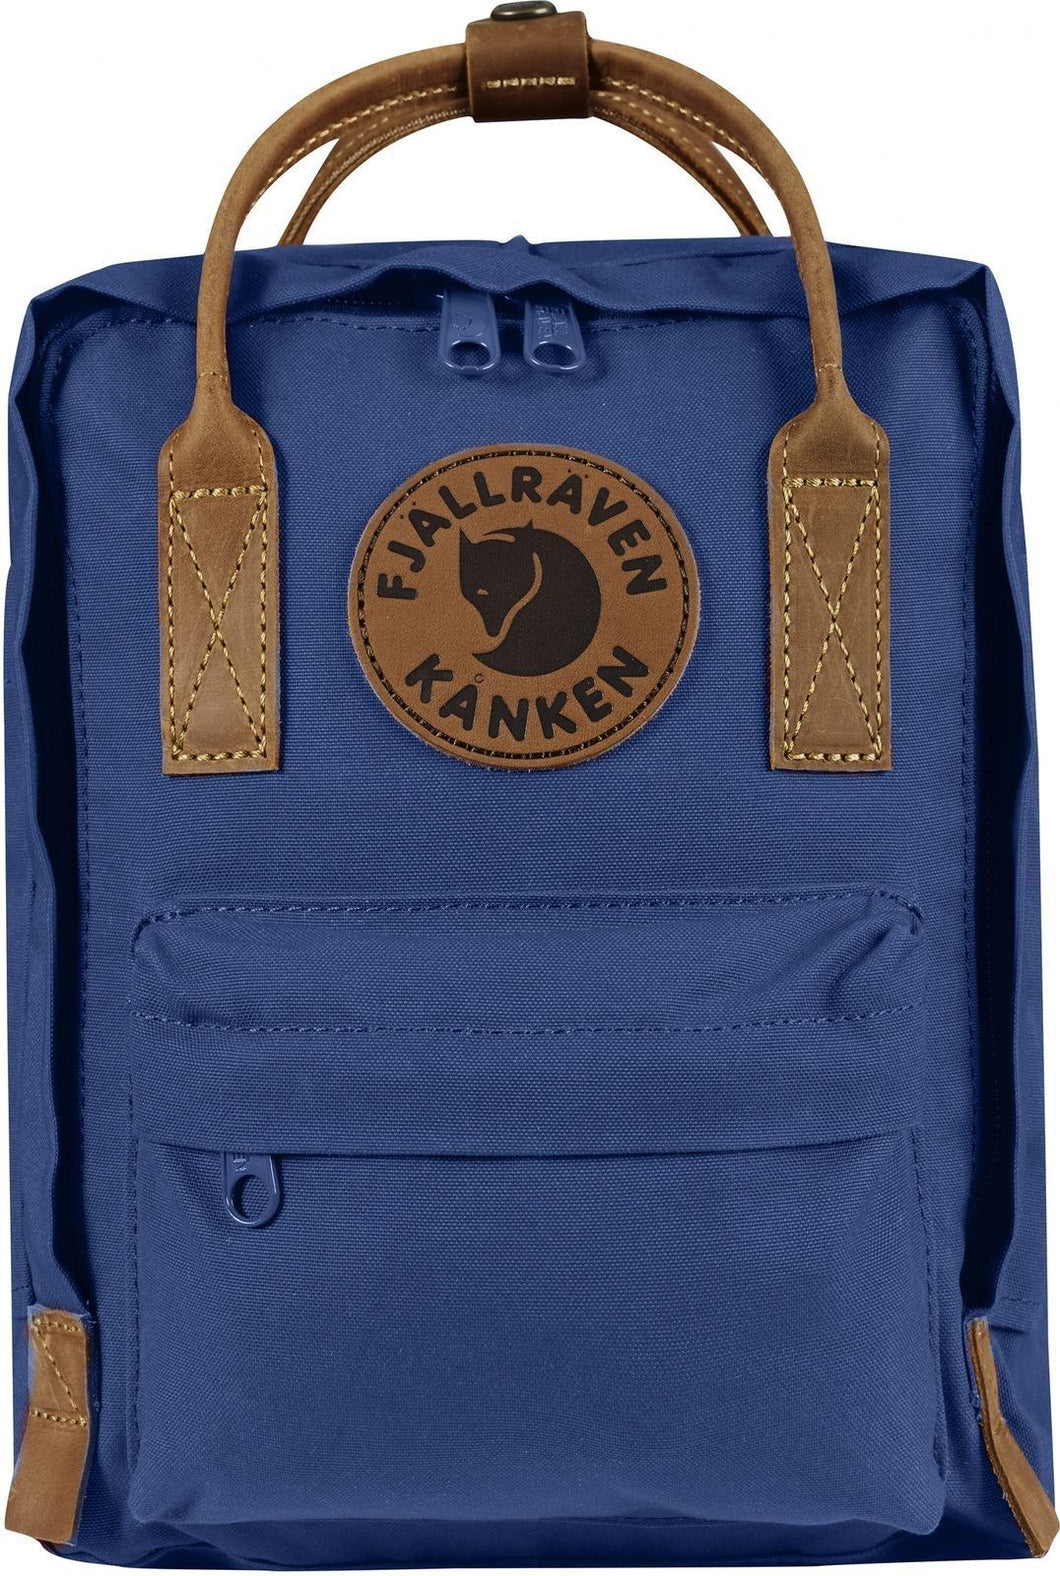 16L  No 2 Backpack - Deep Blue